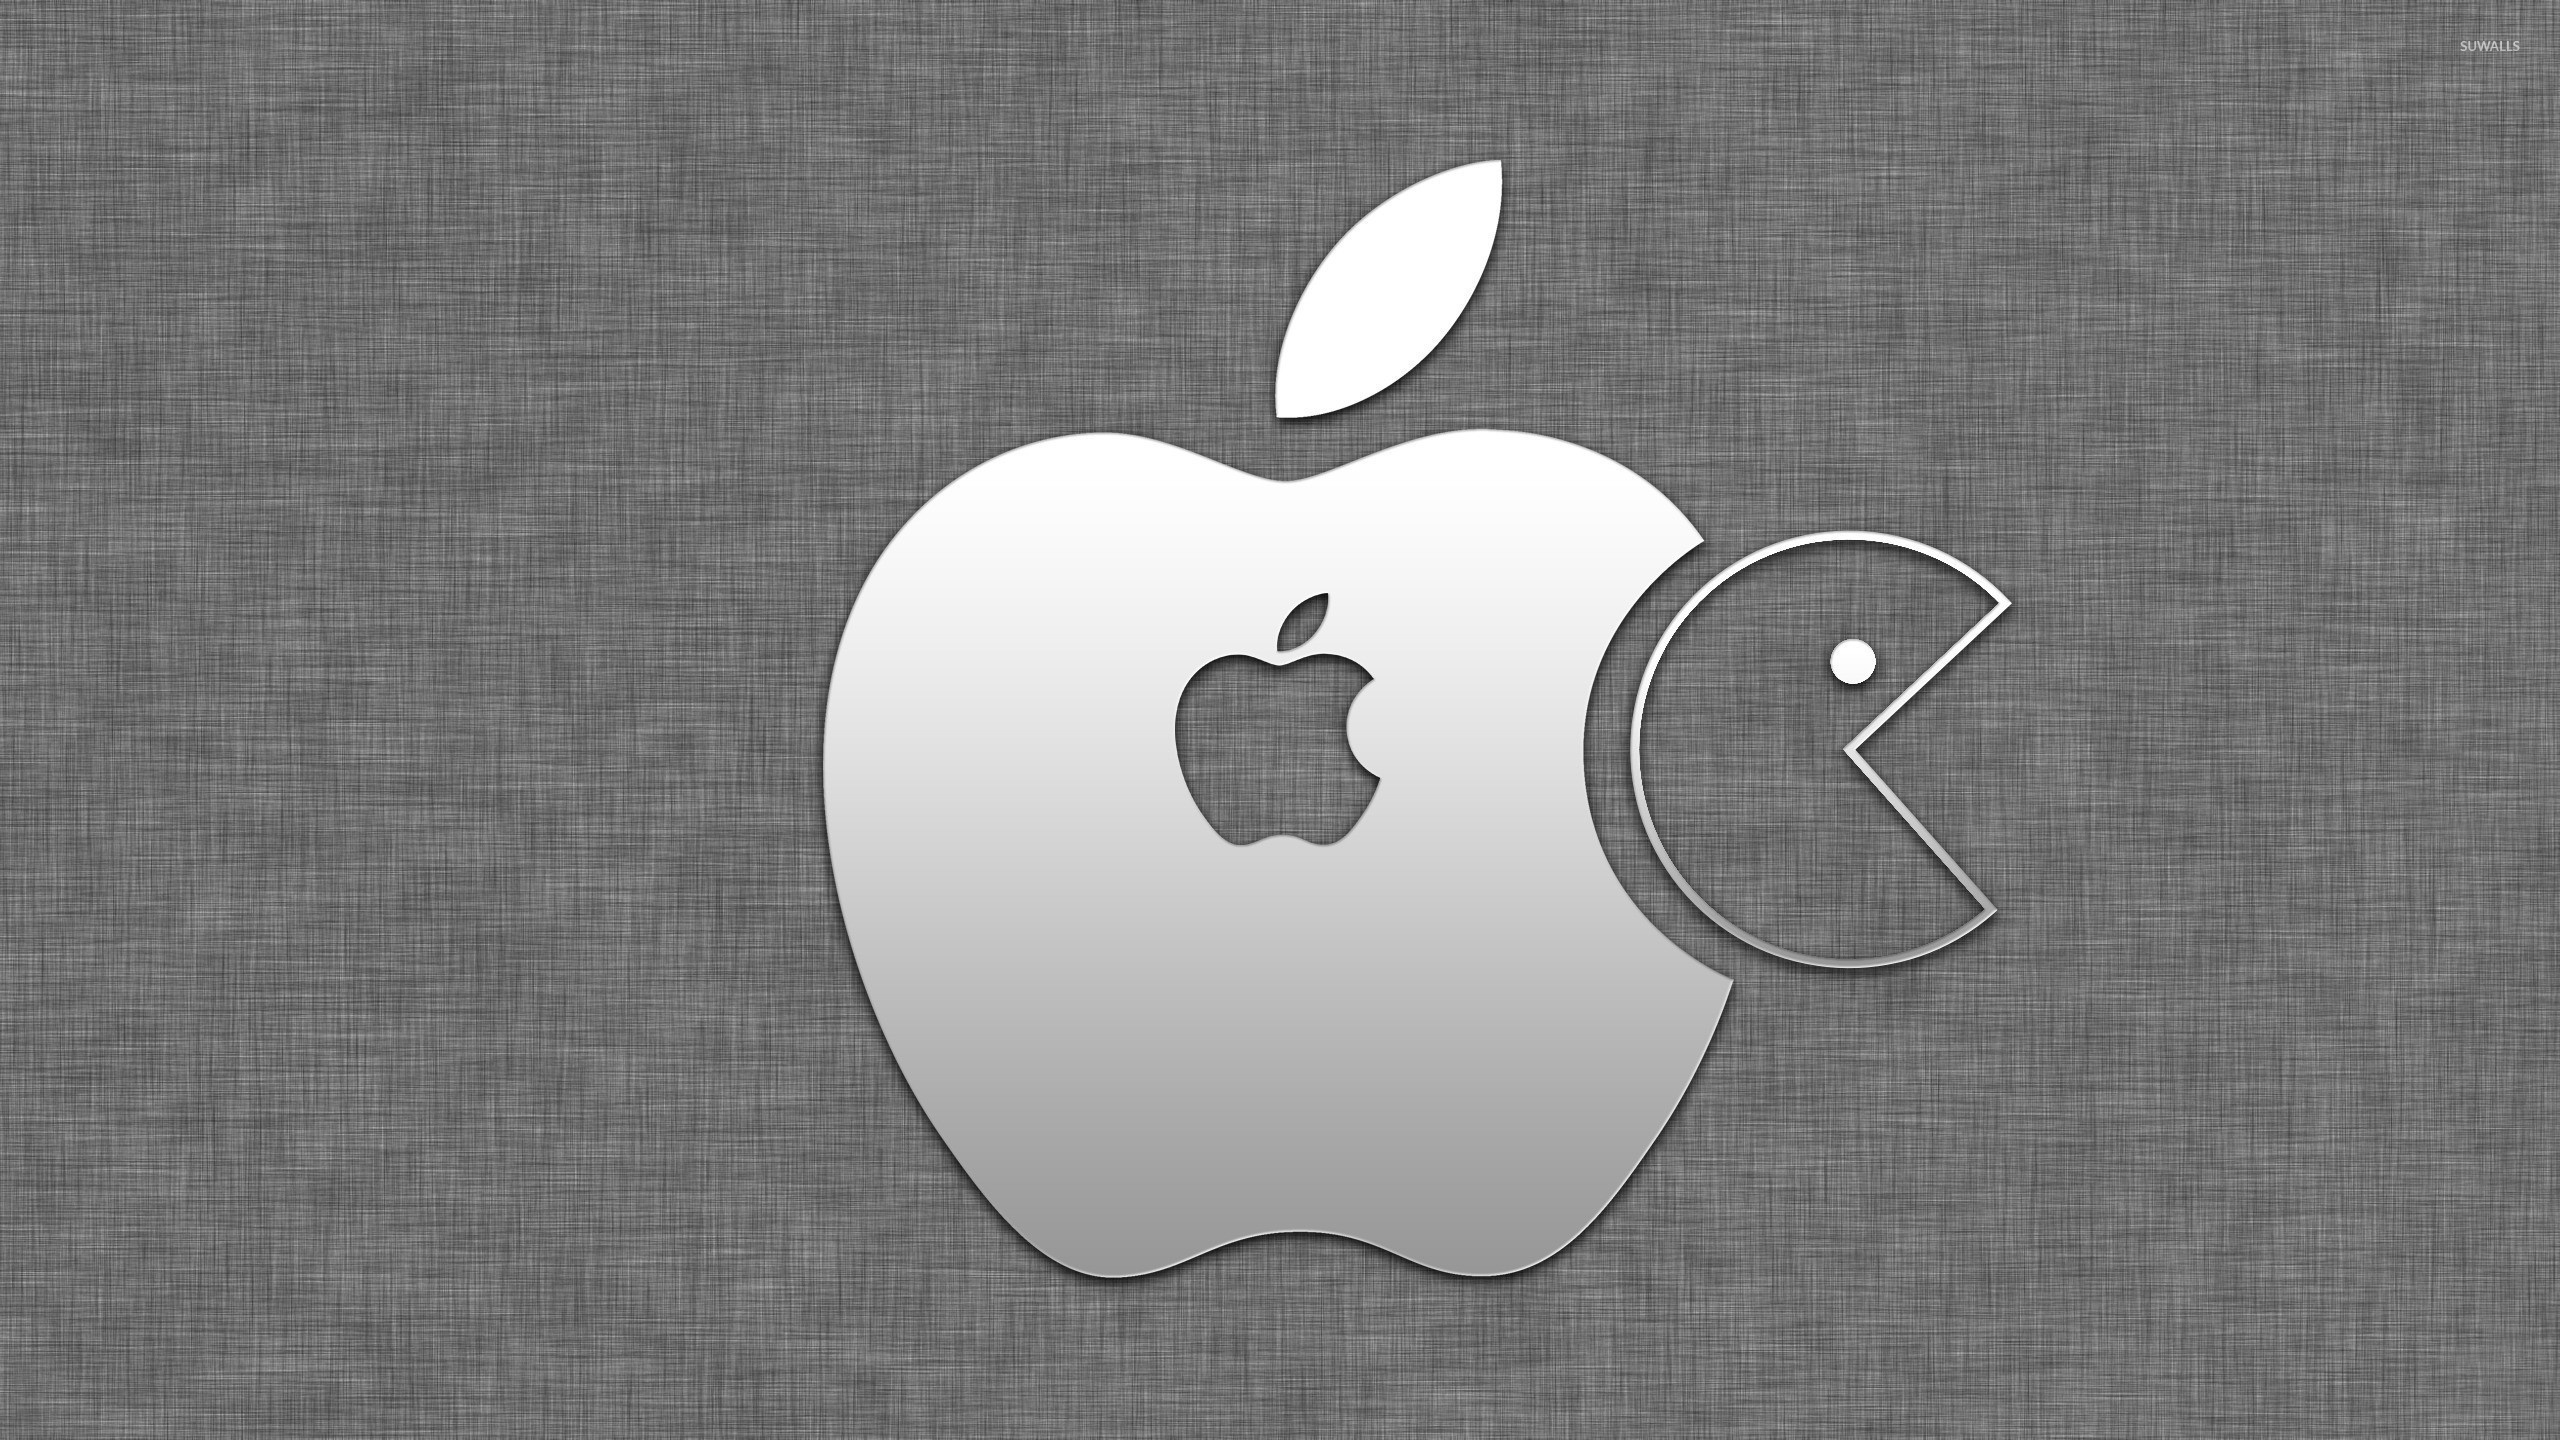 Black-Apple-Logo-HD-Pinterest-Logos-wallpaper-wpc5802864